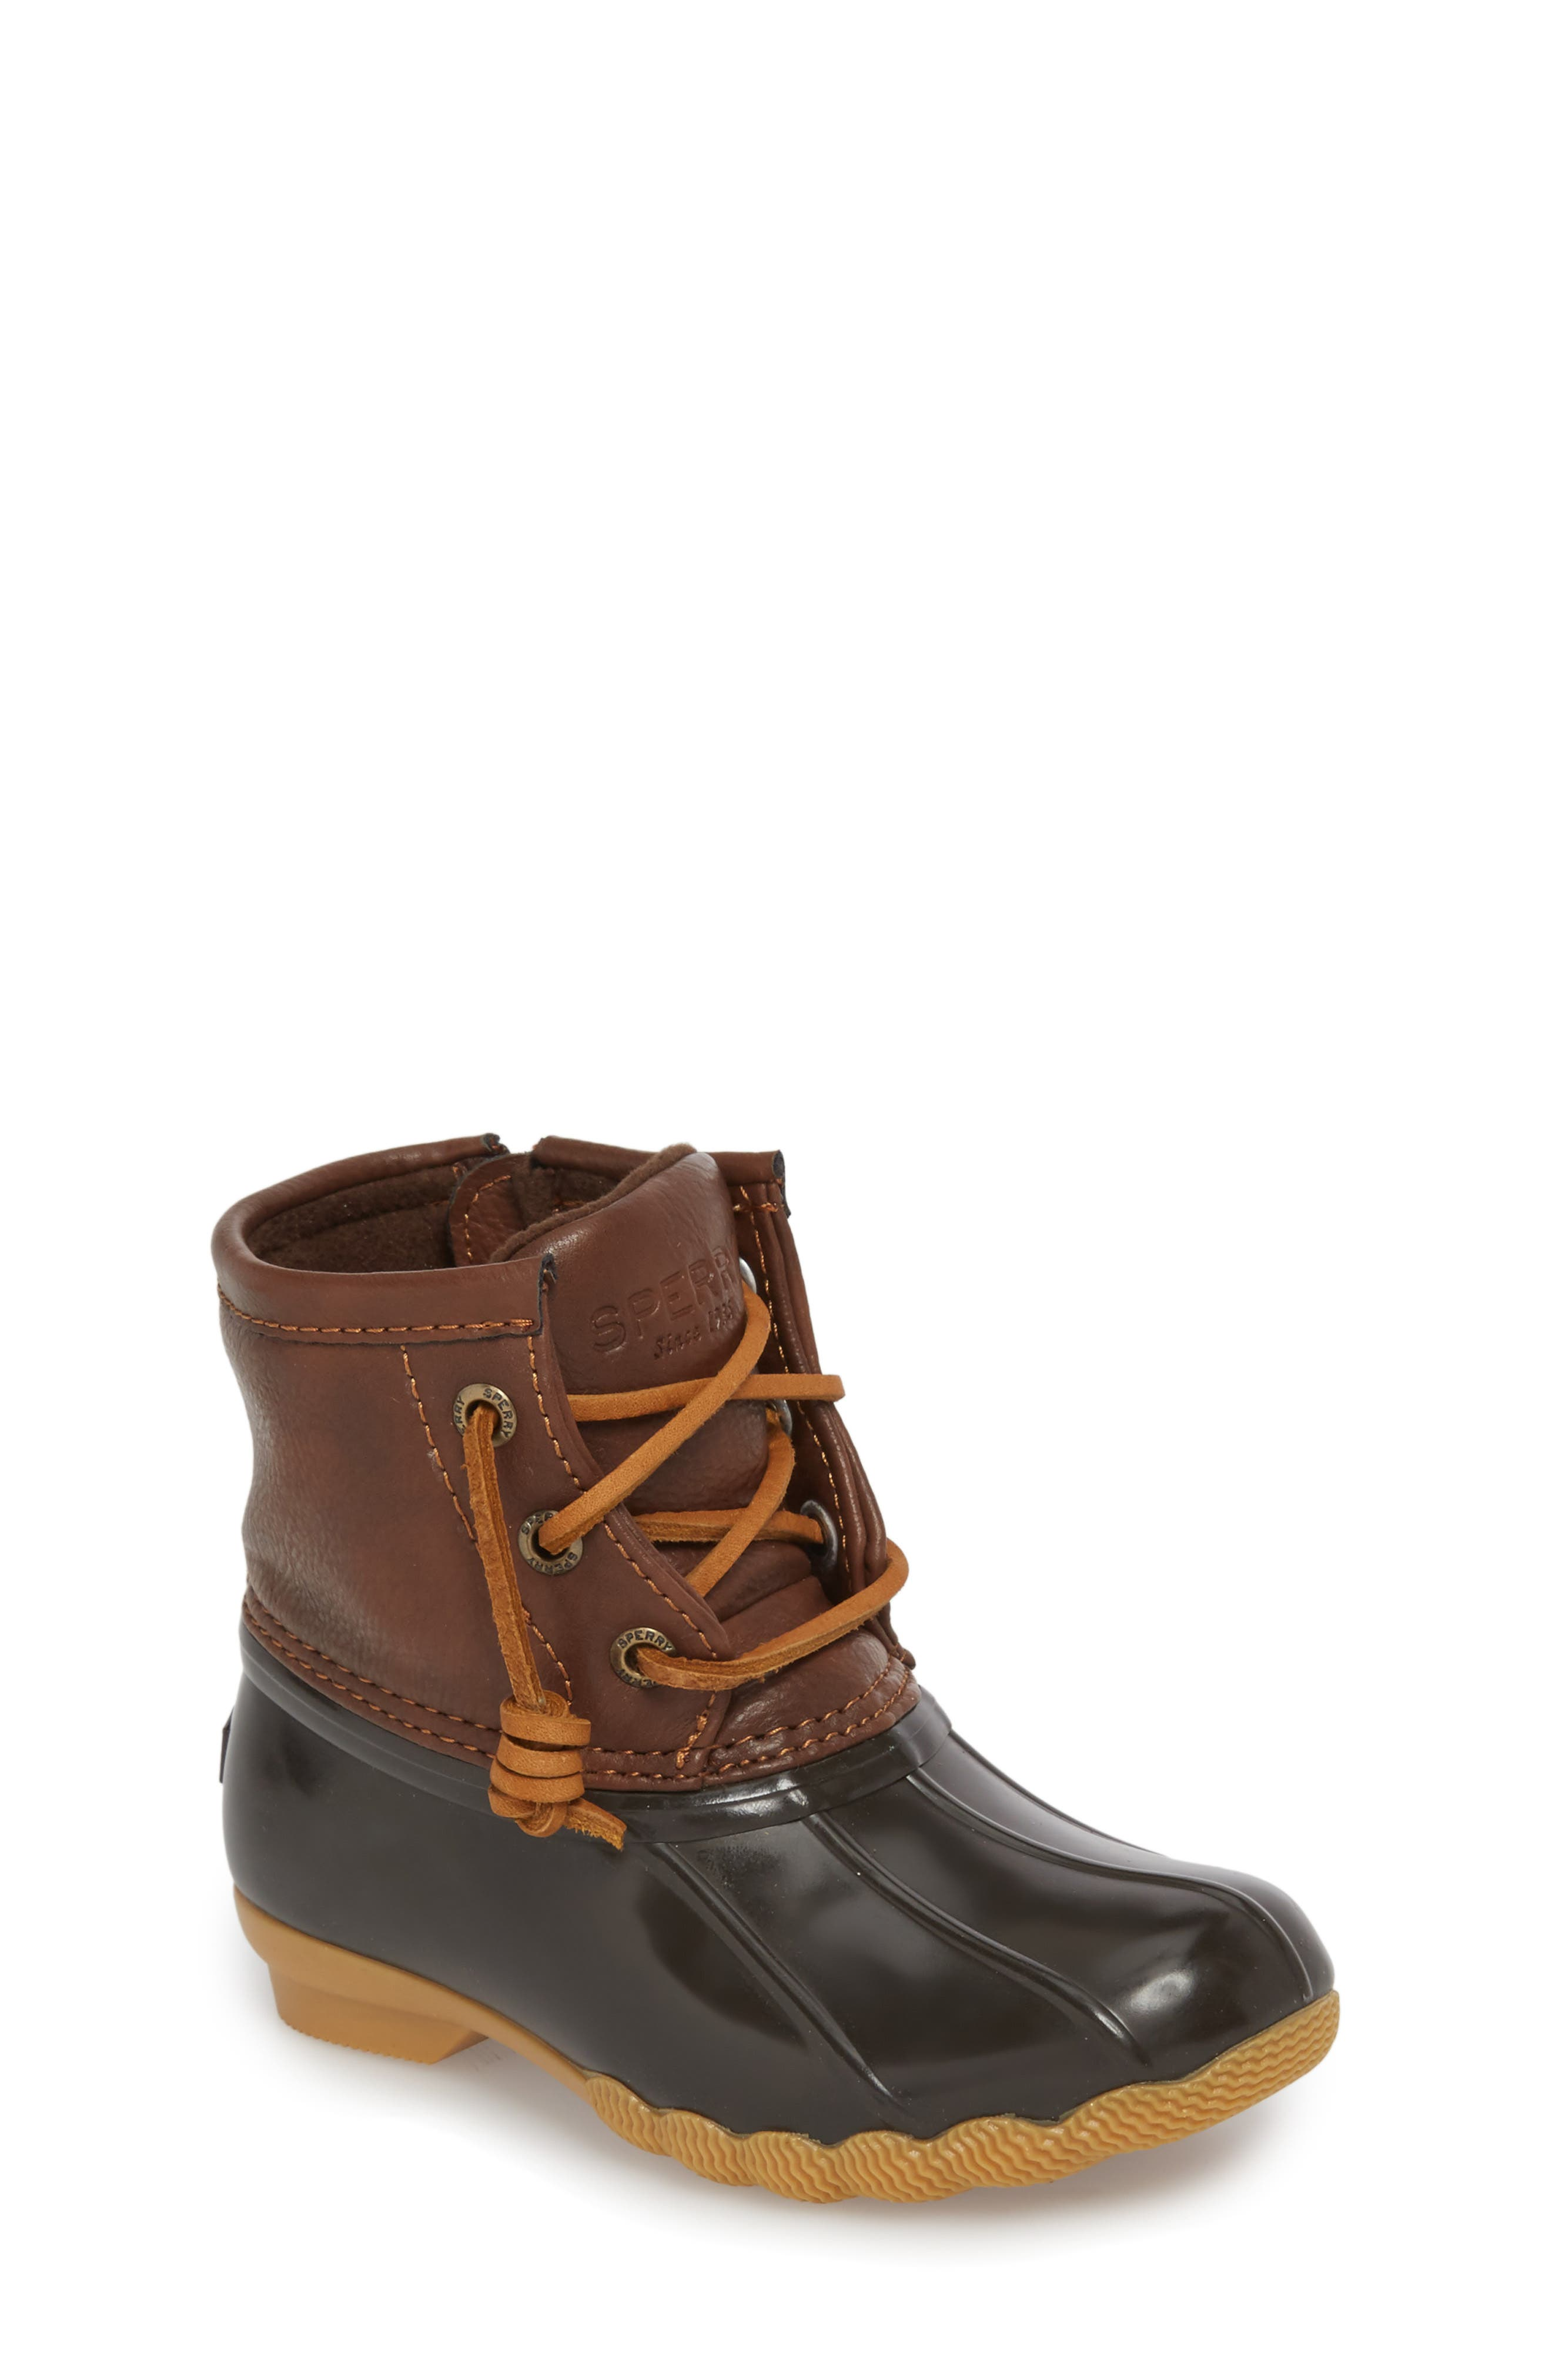 Saltwater Duck Boot,                         Main,                         color, BROWN/ BROWN